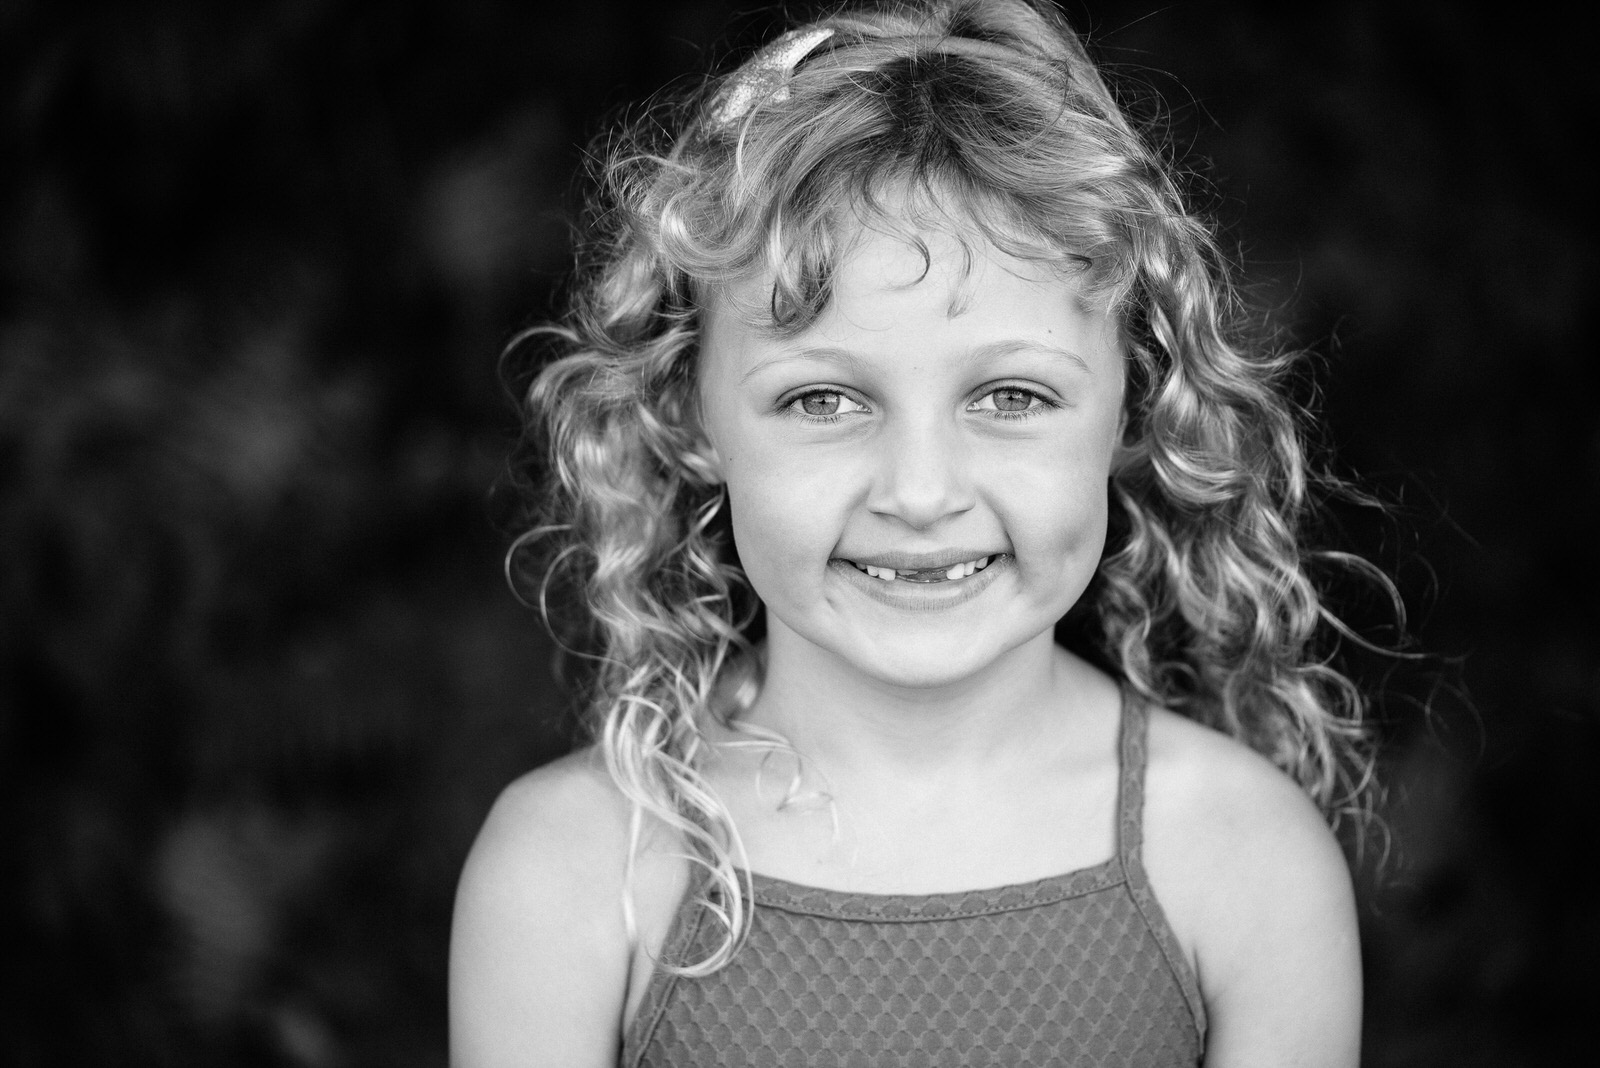 Stunning smile - Black & white children's photograph